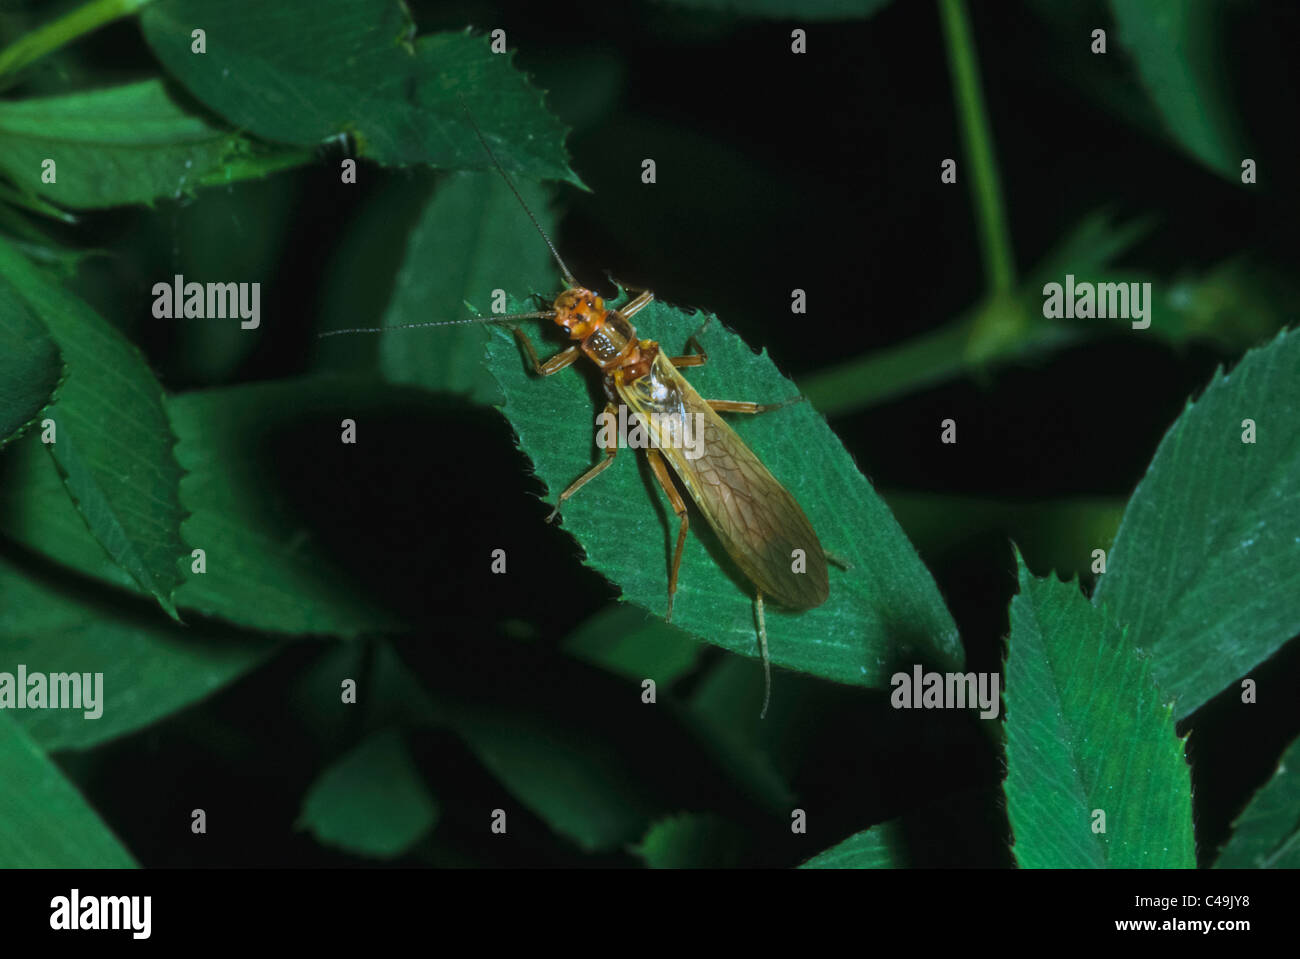 Golden Stonefly (Hesperoperla pacifica) at rest on plant leaf near mountain creek, Mt. Evans Wilderness area, Colorado - Stock Image